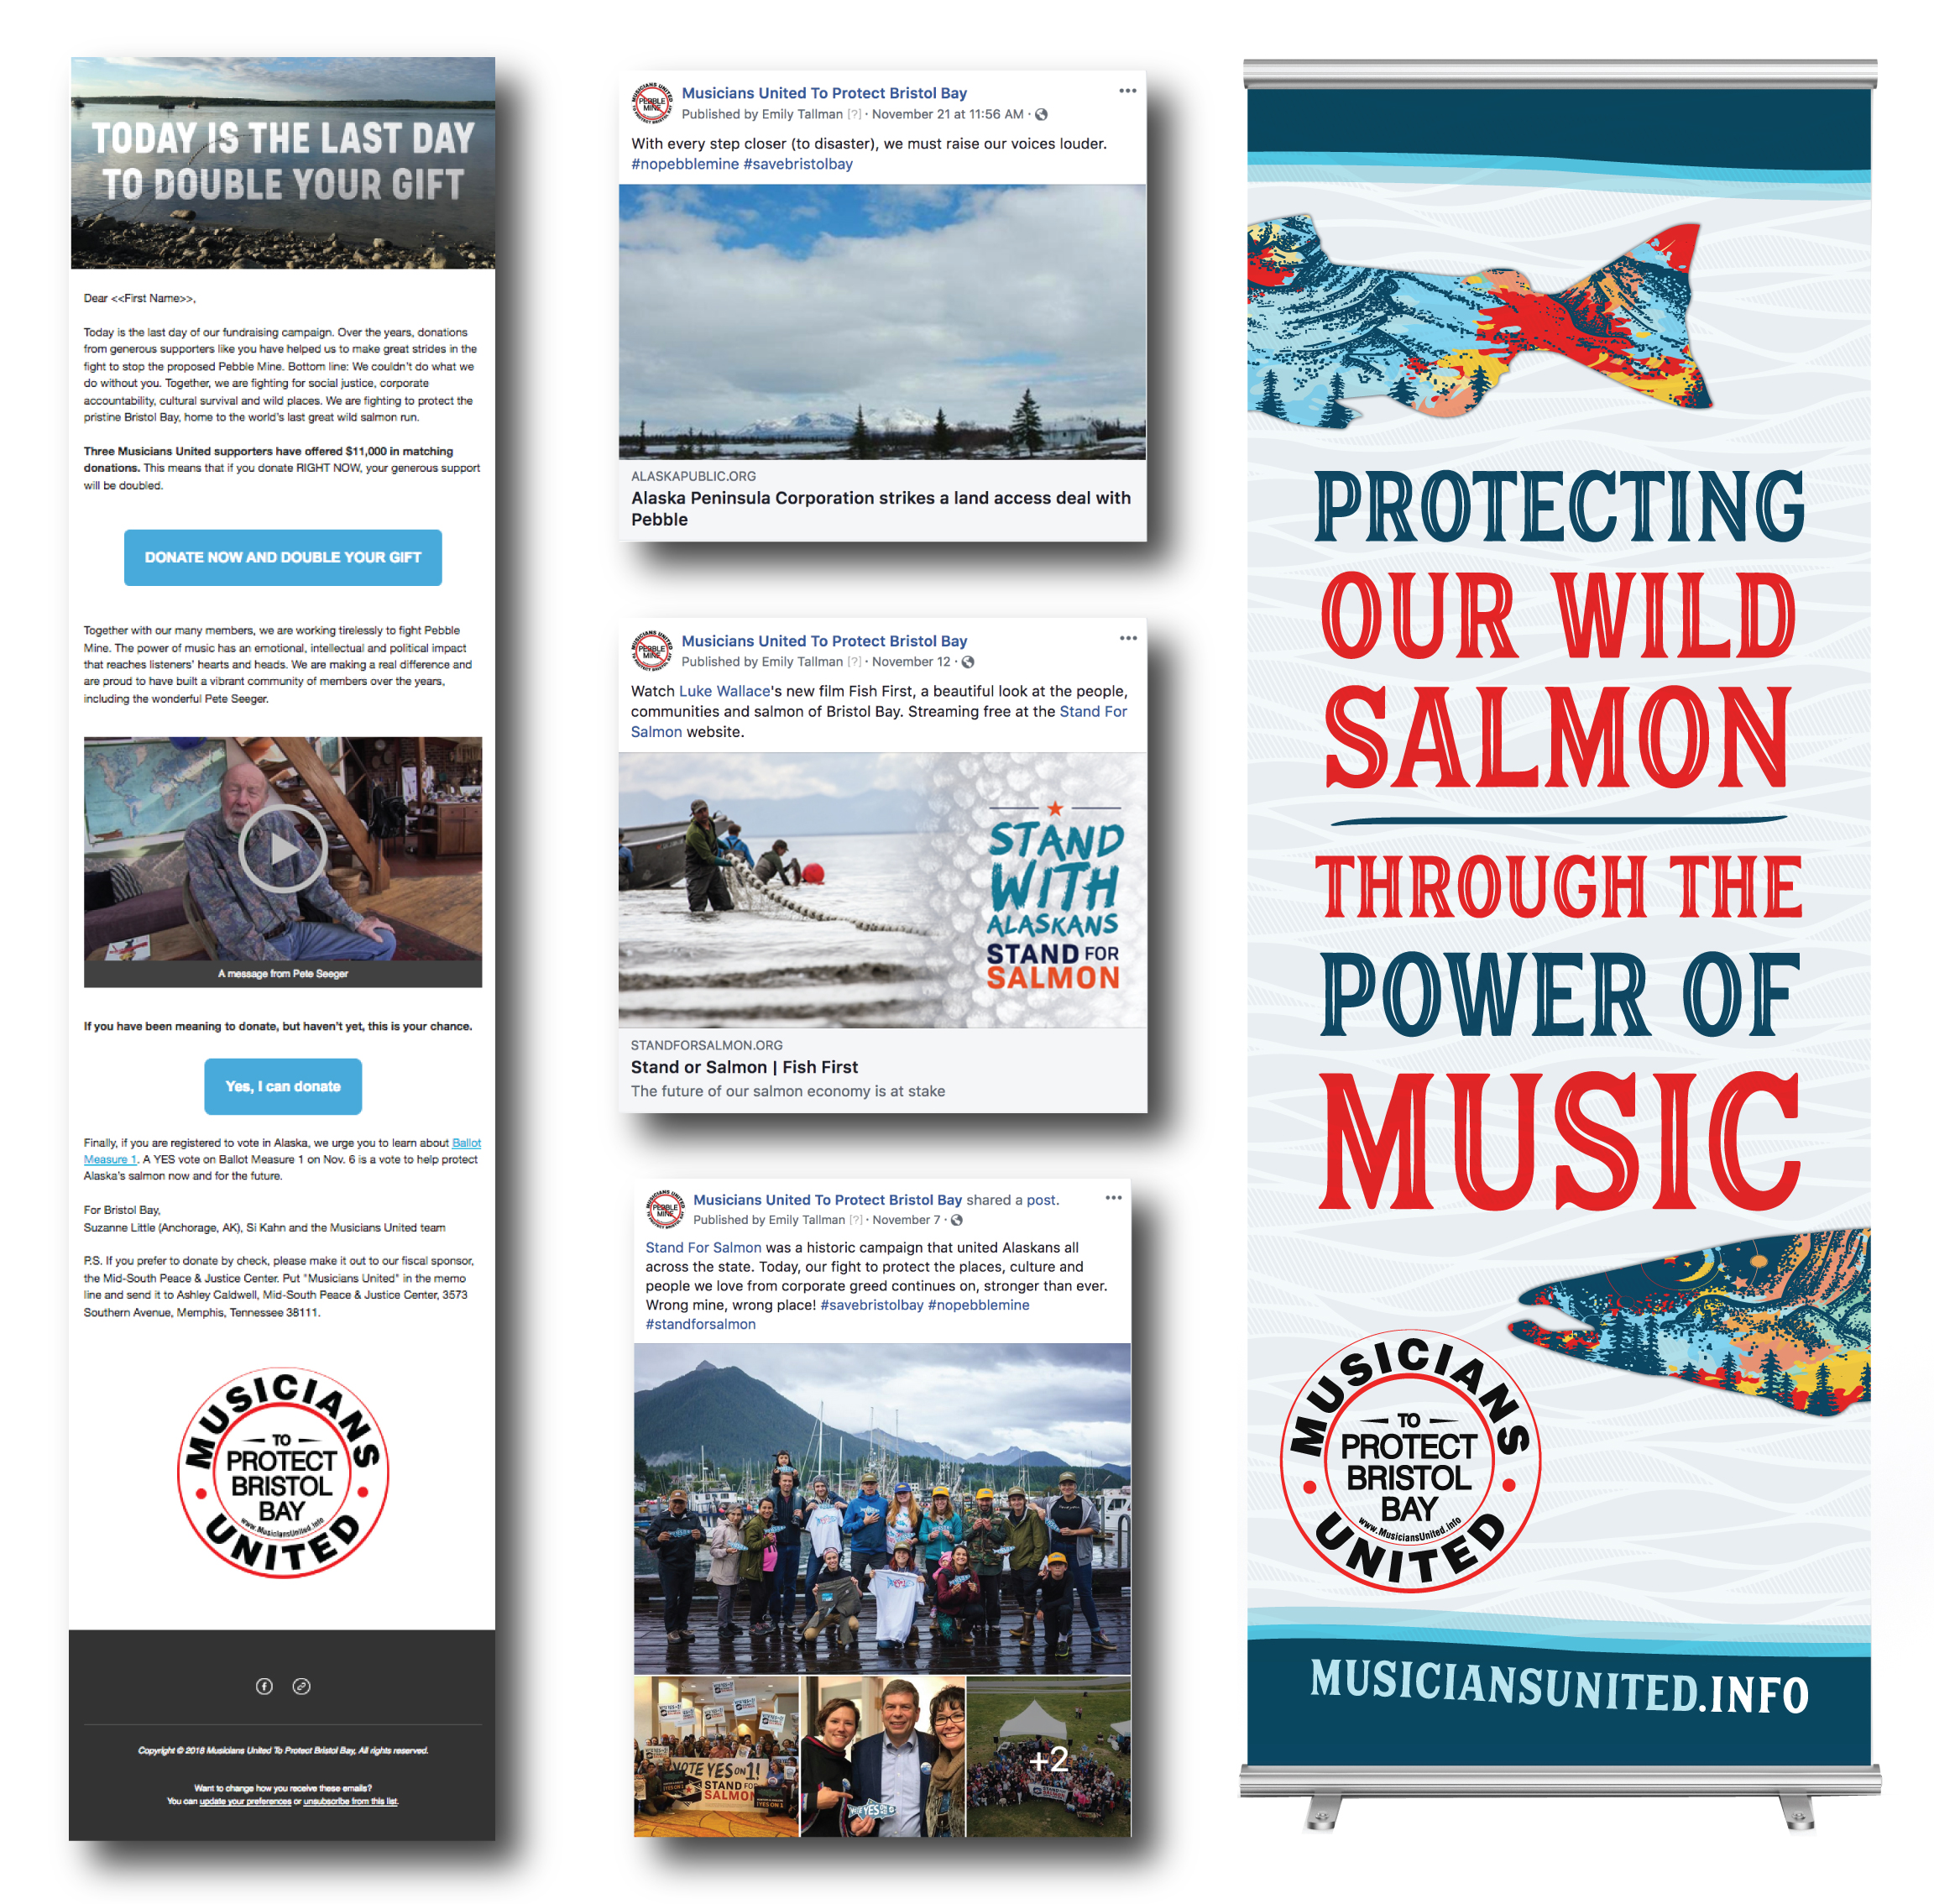 Musicians United to Protect Bristol Bay